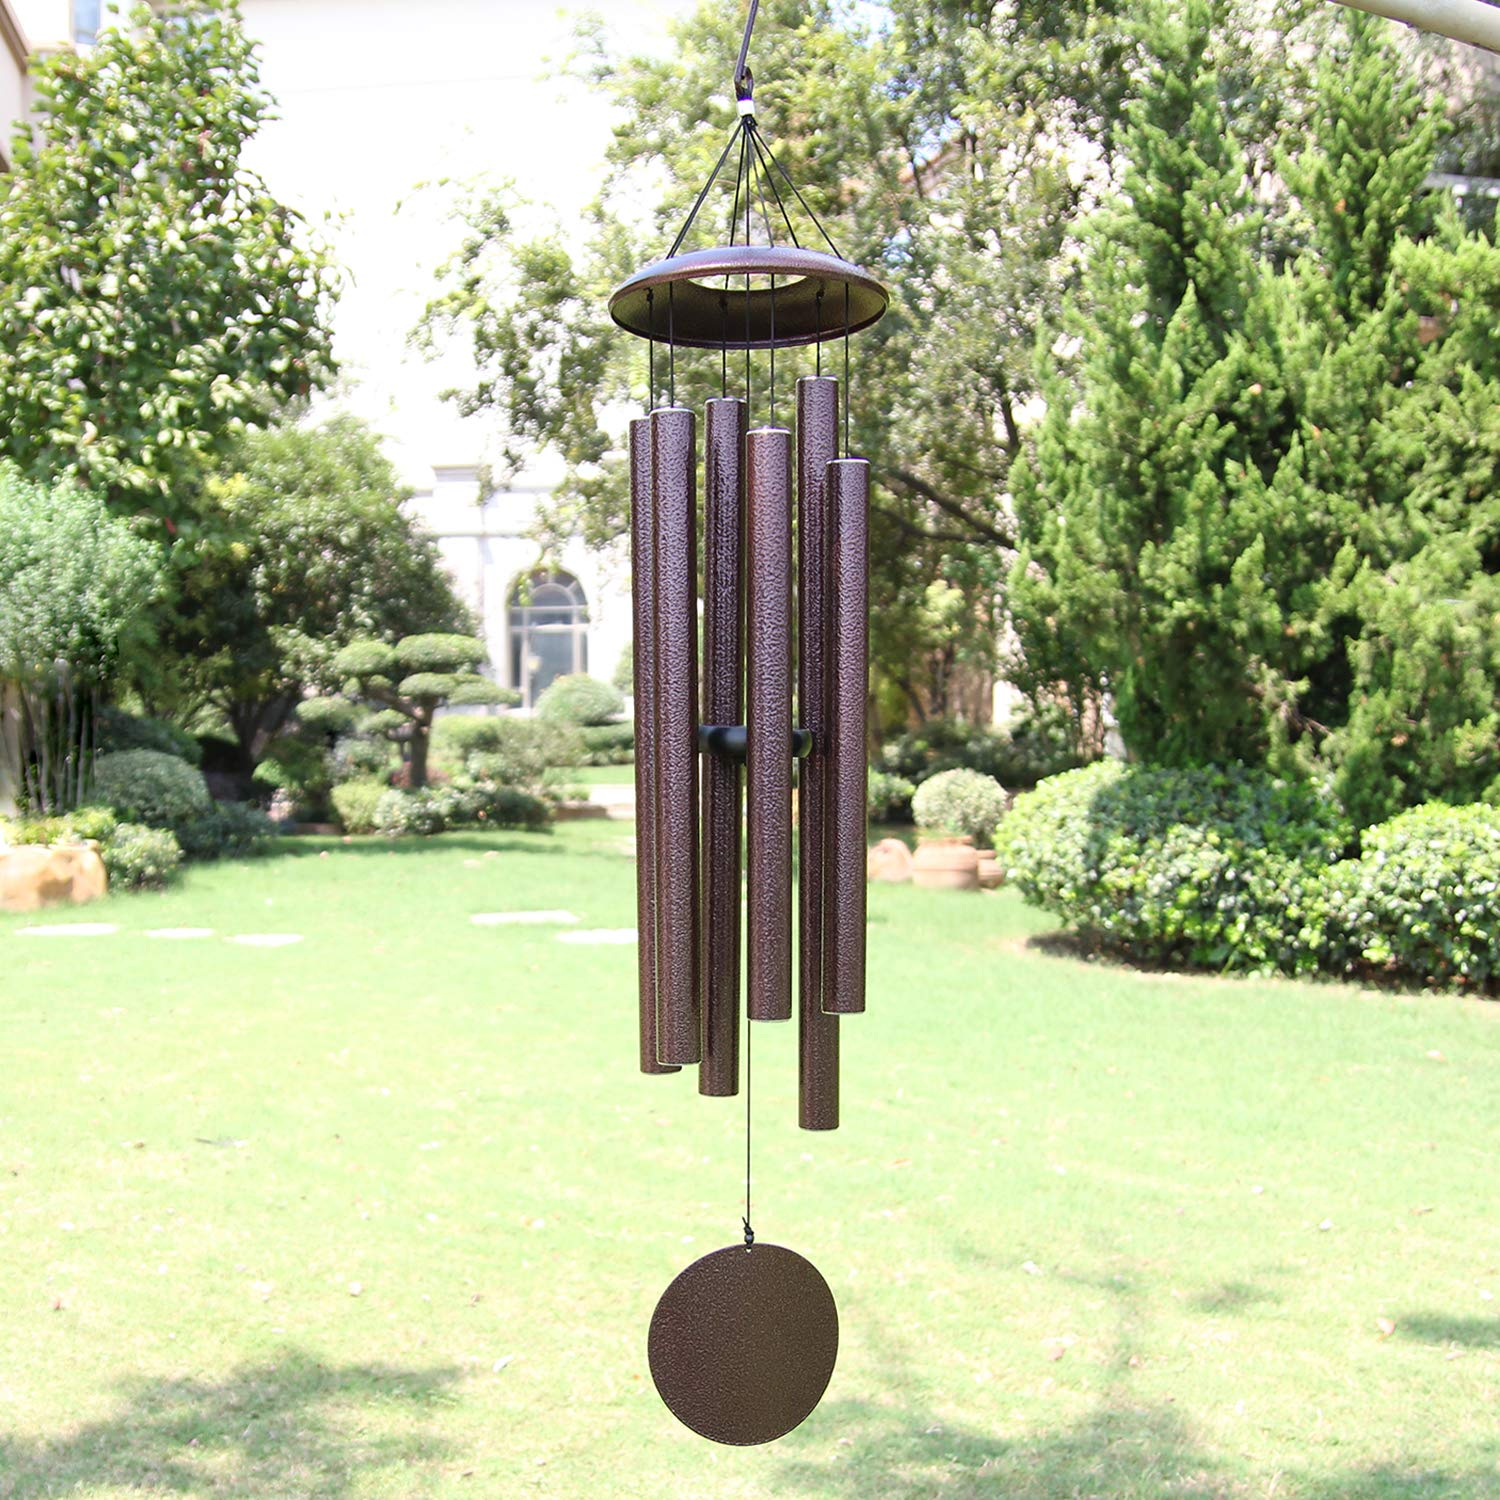 ASTARIN Wind Chimes Outdoor Deep Tone,45-Inch Memorial Wind Chimes Large with 6 Heavy Tubes,Amazing Grace Wind Chimes Outdoor for Garden Hanging Decor,Sympathy Gifts,Antique Silver